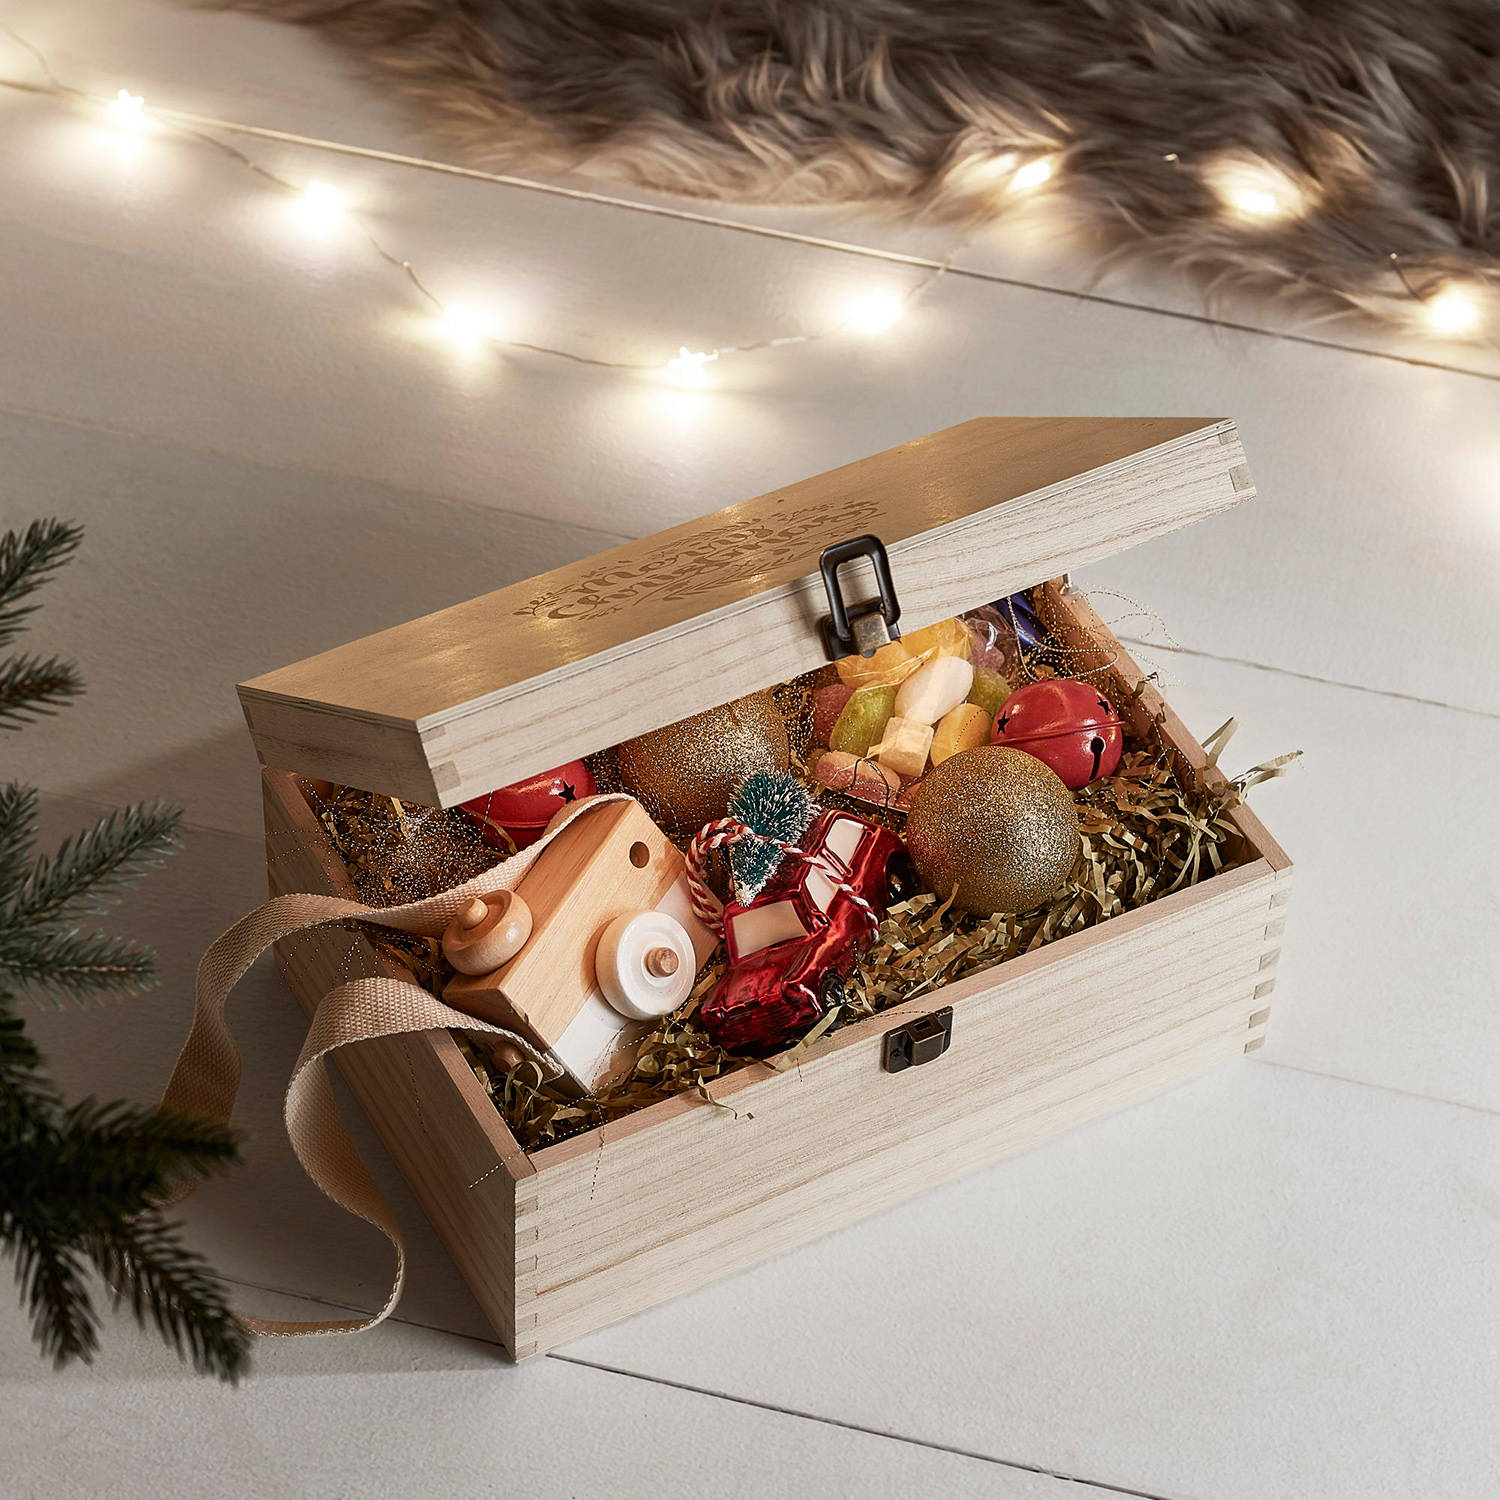 Light Up Christmas Eve Box filled with toys the night before Christmas